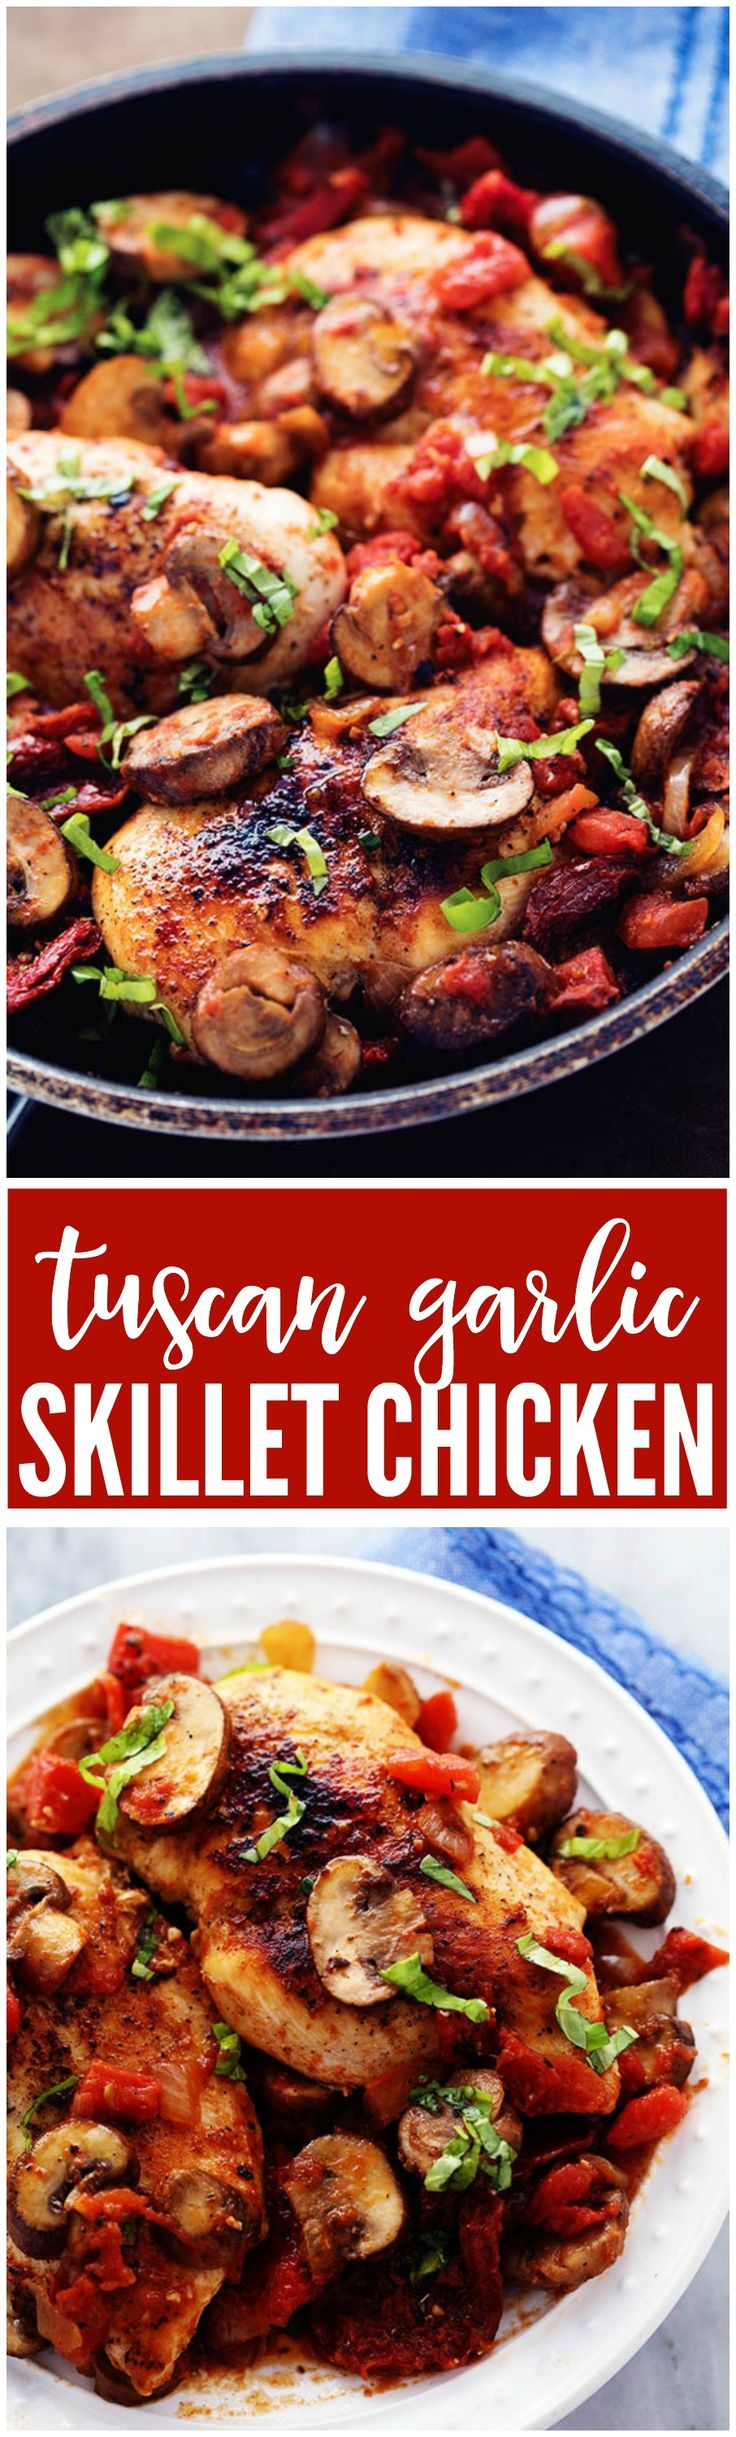 A quick, easy and impressive 30 minute meal that is packed with delicious flavor! therecipecritic.com